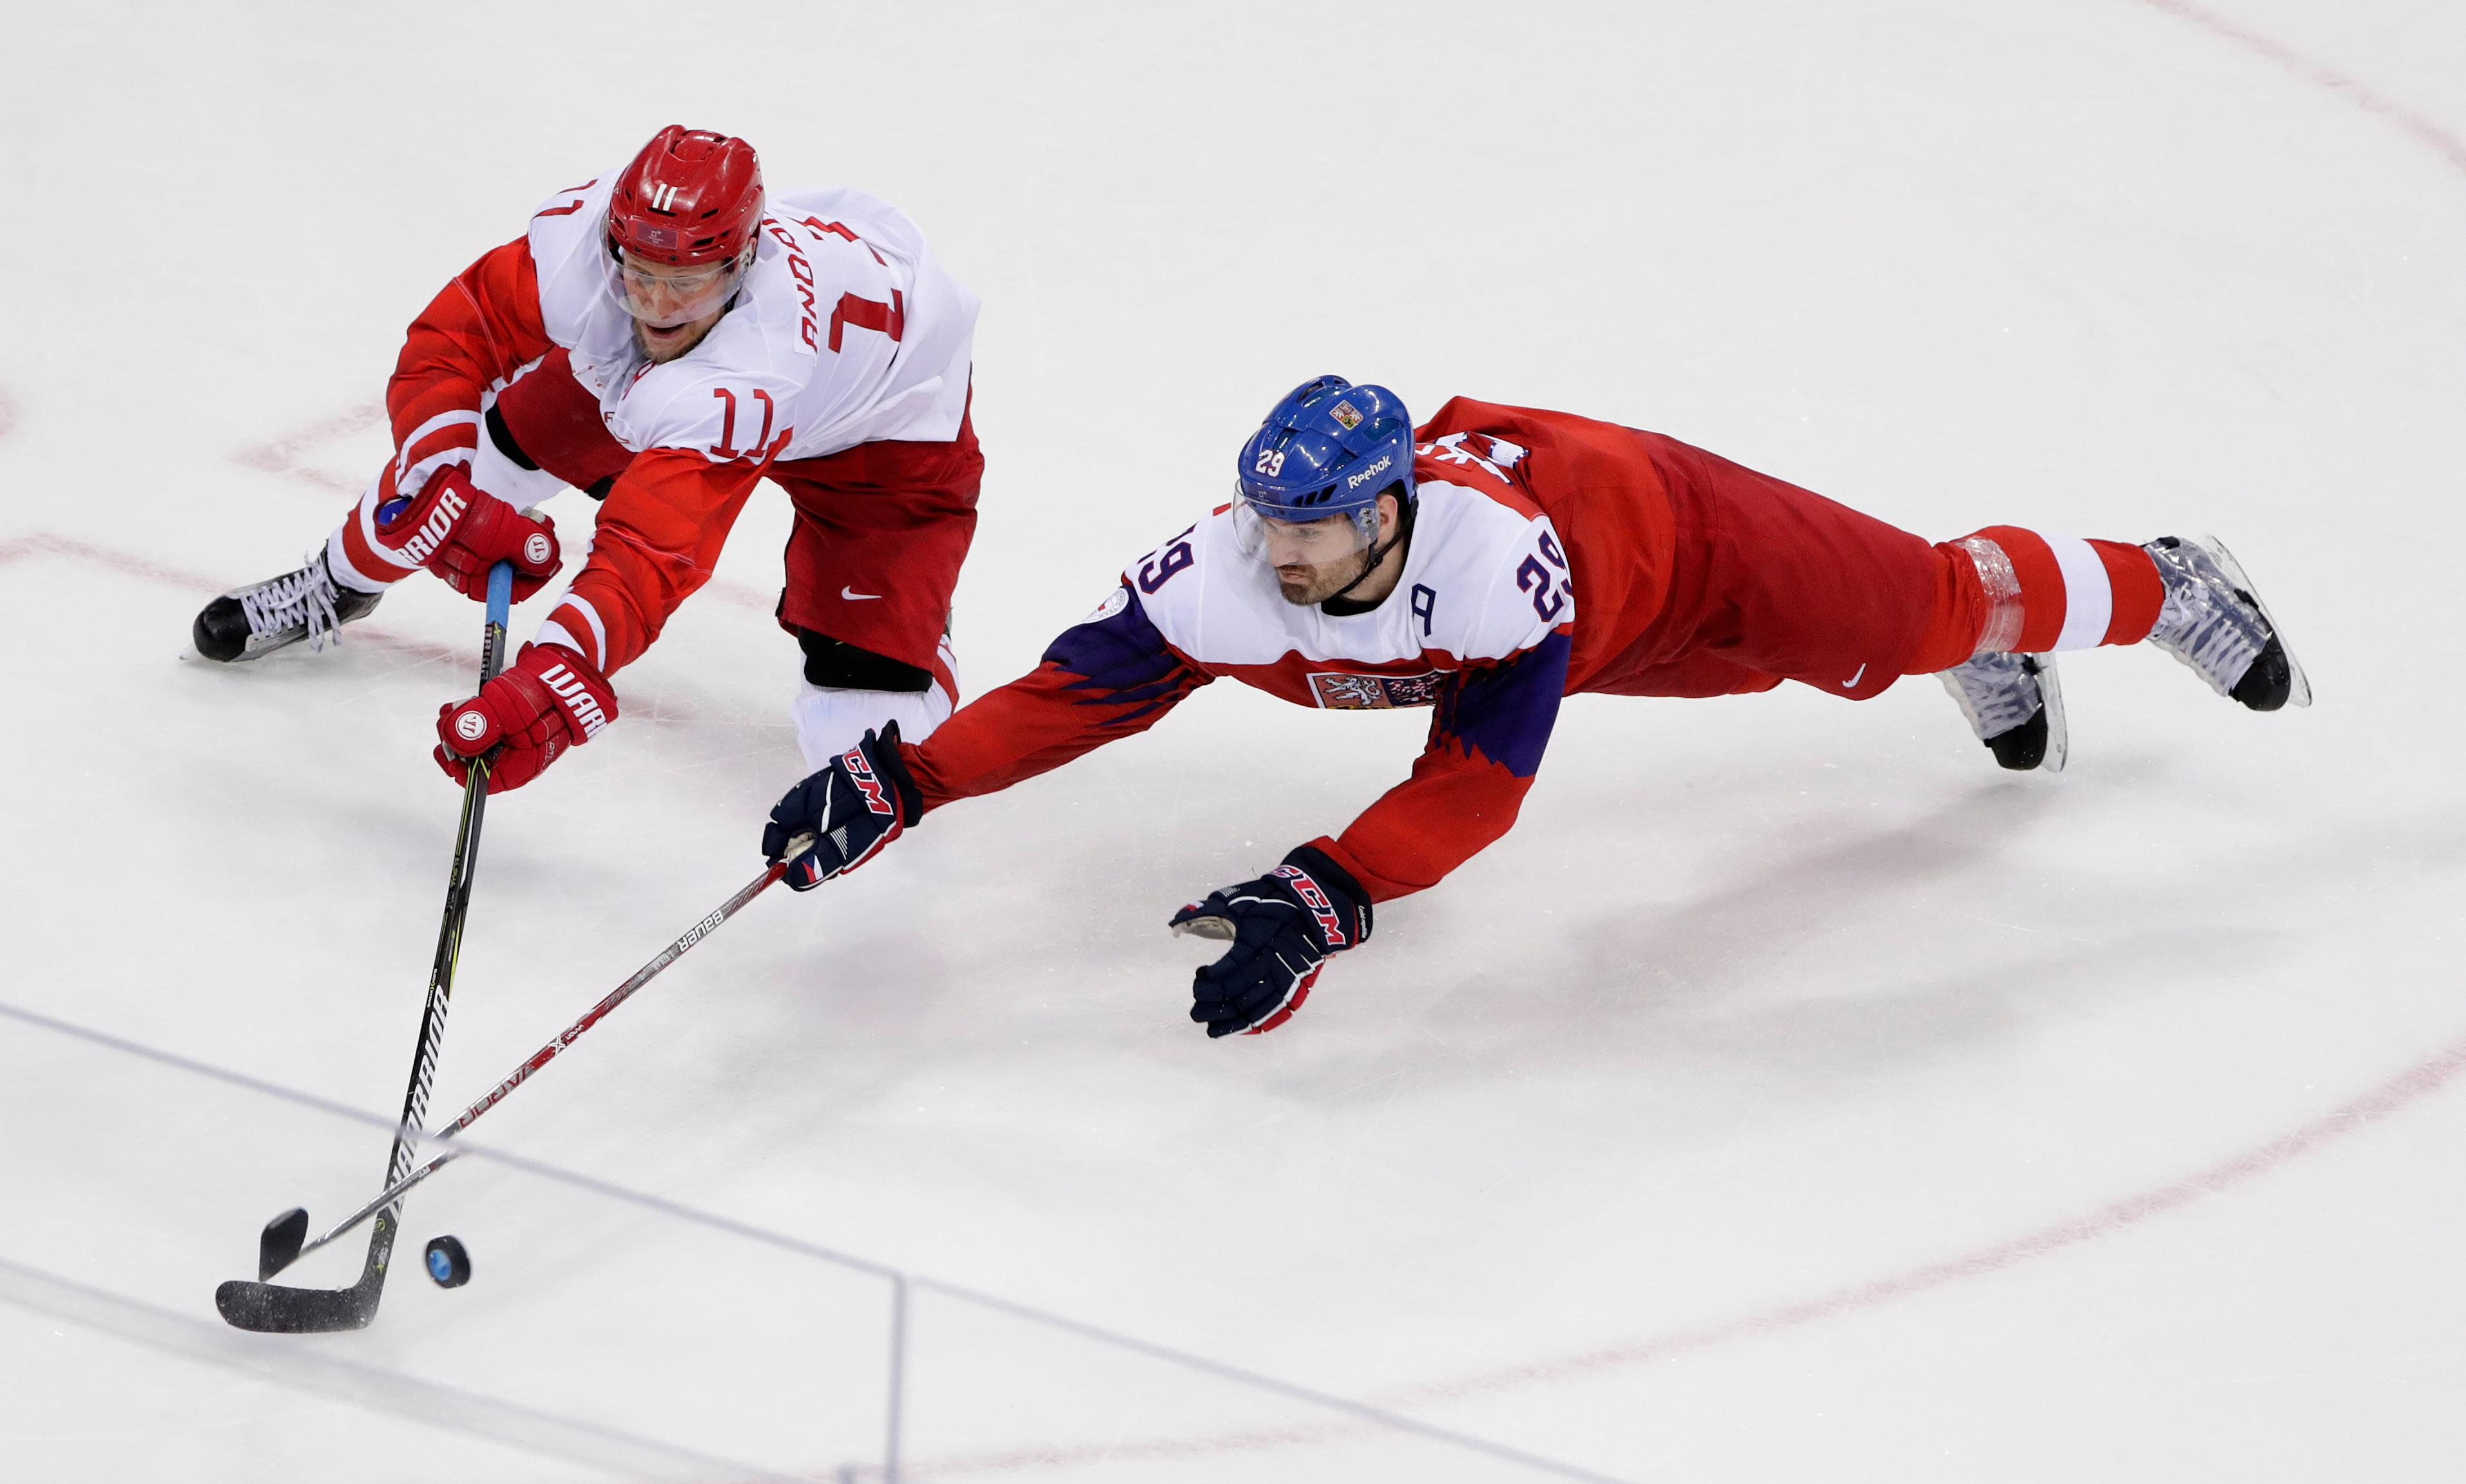 Russian athlete Sergei Andronov (11) and Jan Kolar (29), of the Czech Republic, battle for the puck during the third period of the semifinal round of the men's hockey game at the 2018 Winter Olympics in Gangneung, South Korea, Friday, Feb. 23, 2018. (AP Photo/Frank Franklin II)